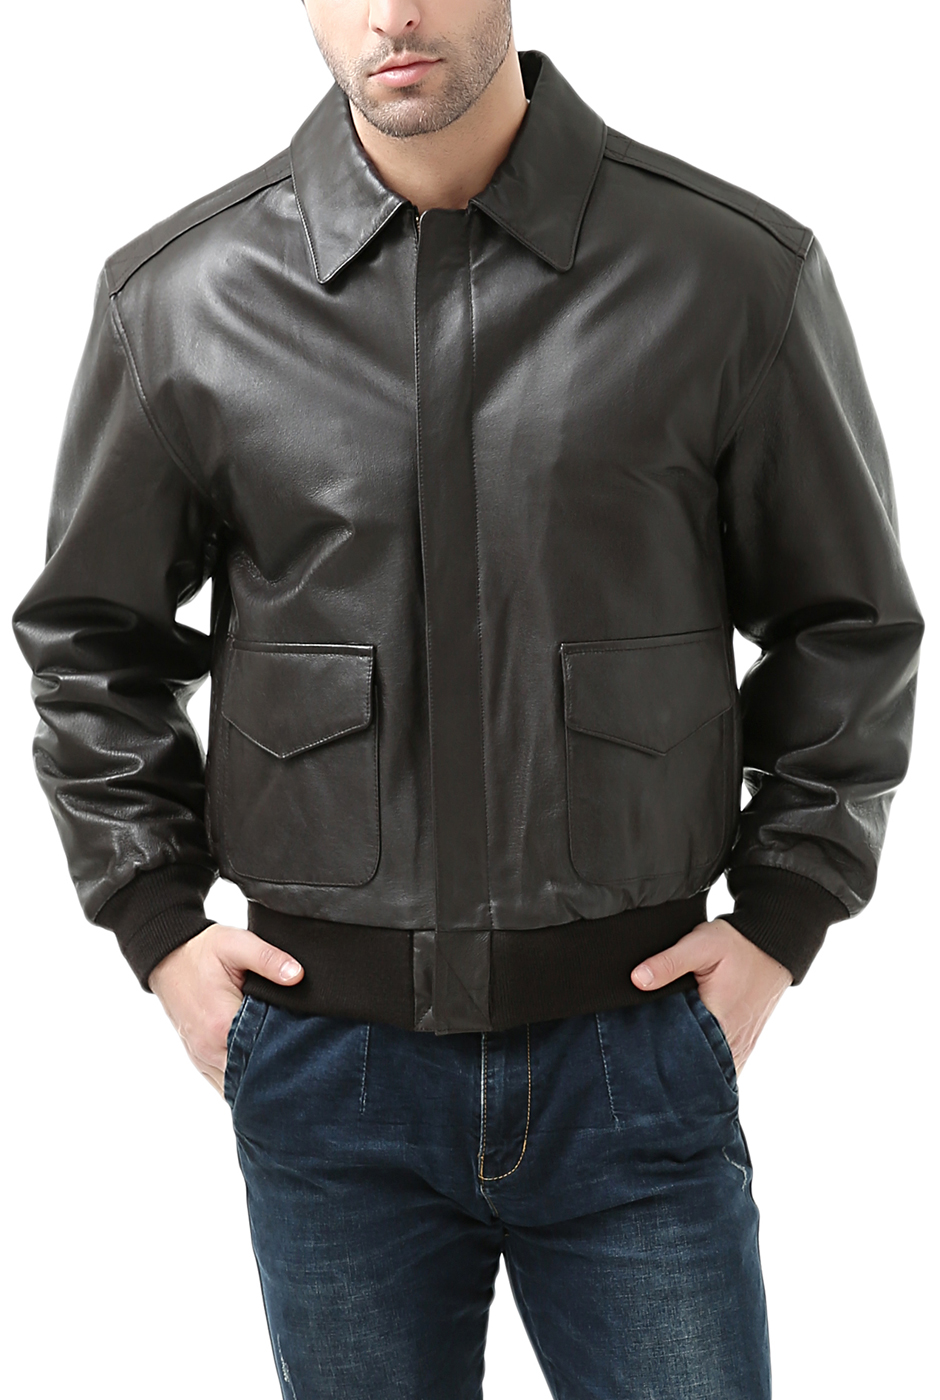 aea5a6340 Men's Air Force A-2 Leather Flight Bomber Jacket - Big & Tall